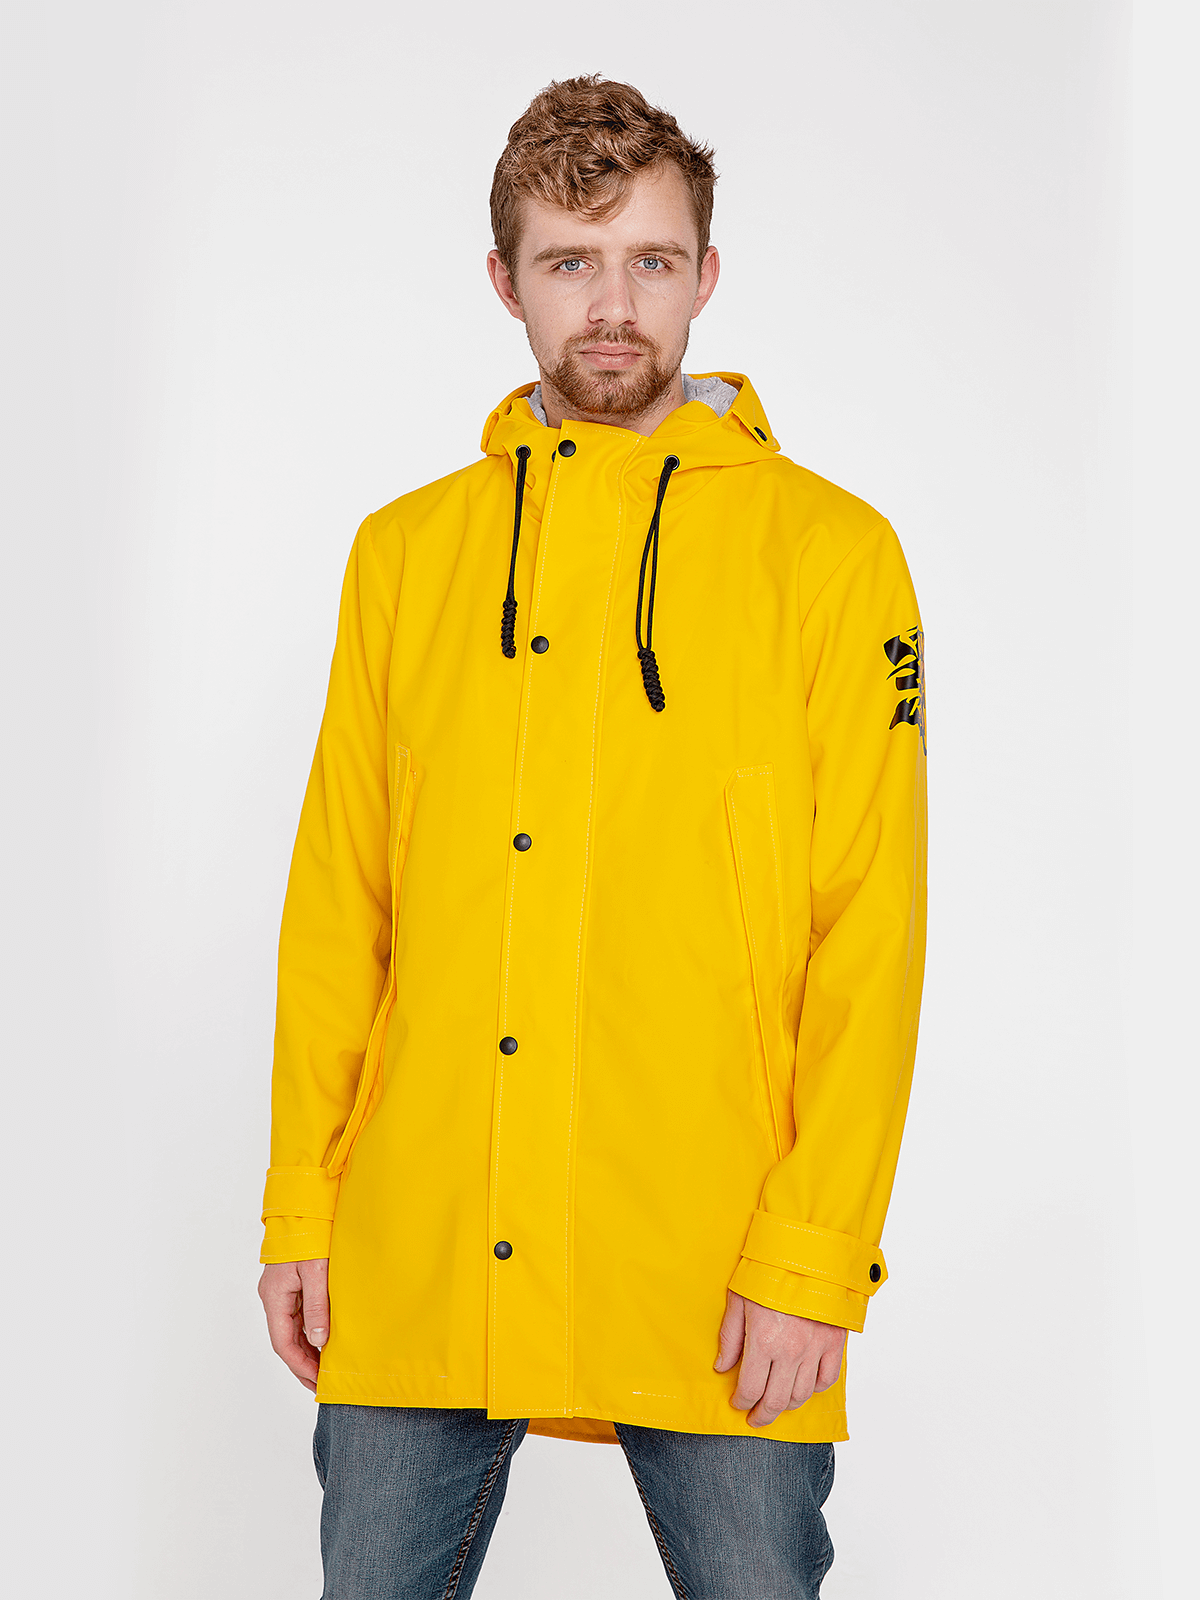 Men's Raincoat From Lviv With Rain. Color yellow. Outer material: basic – polyester 100%, covering – PVC -100%, water resistance 1500 g/m2/24 hour, resistant to ultraviolet, wearproof.